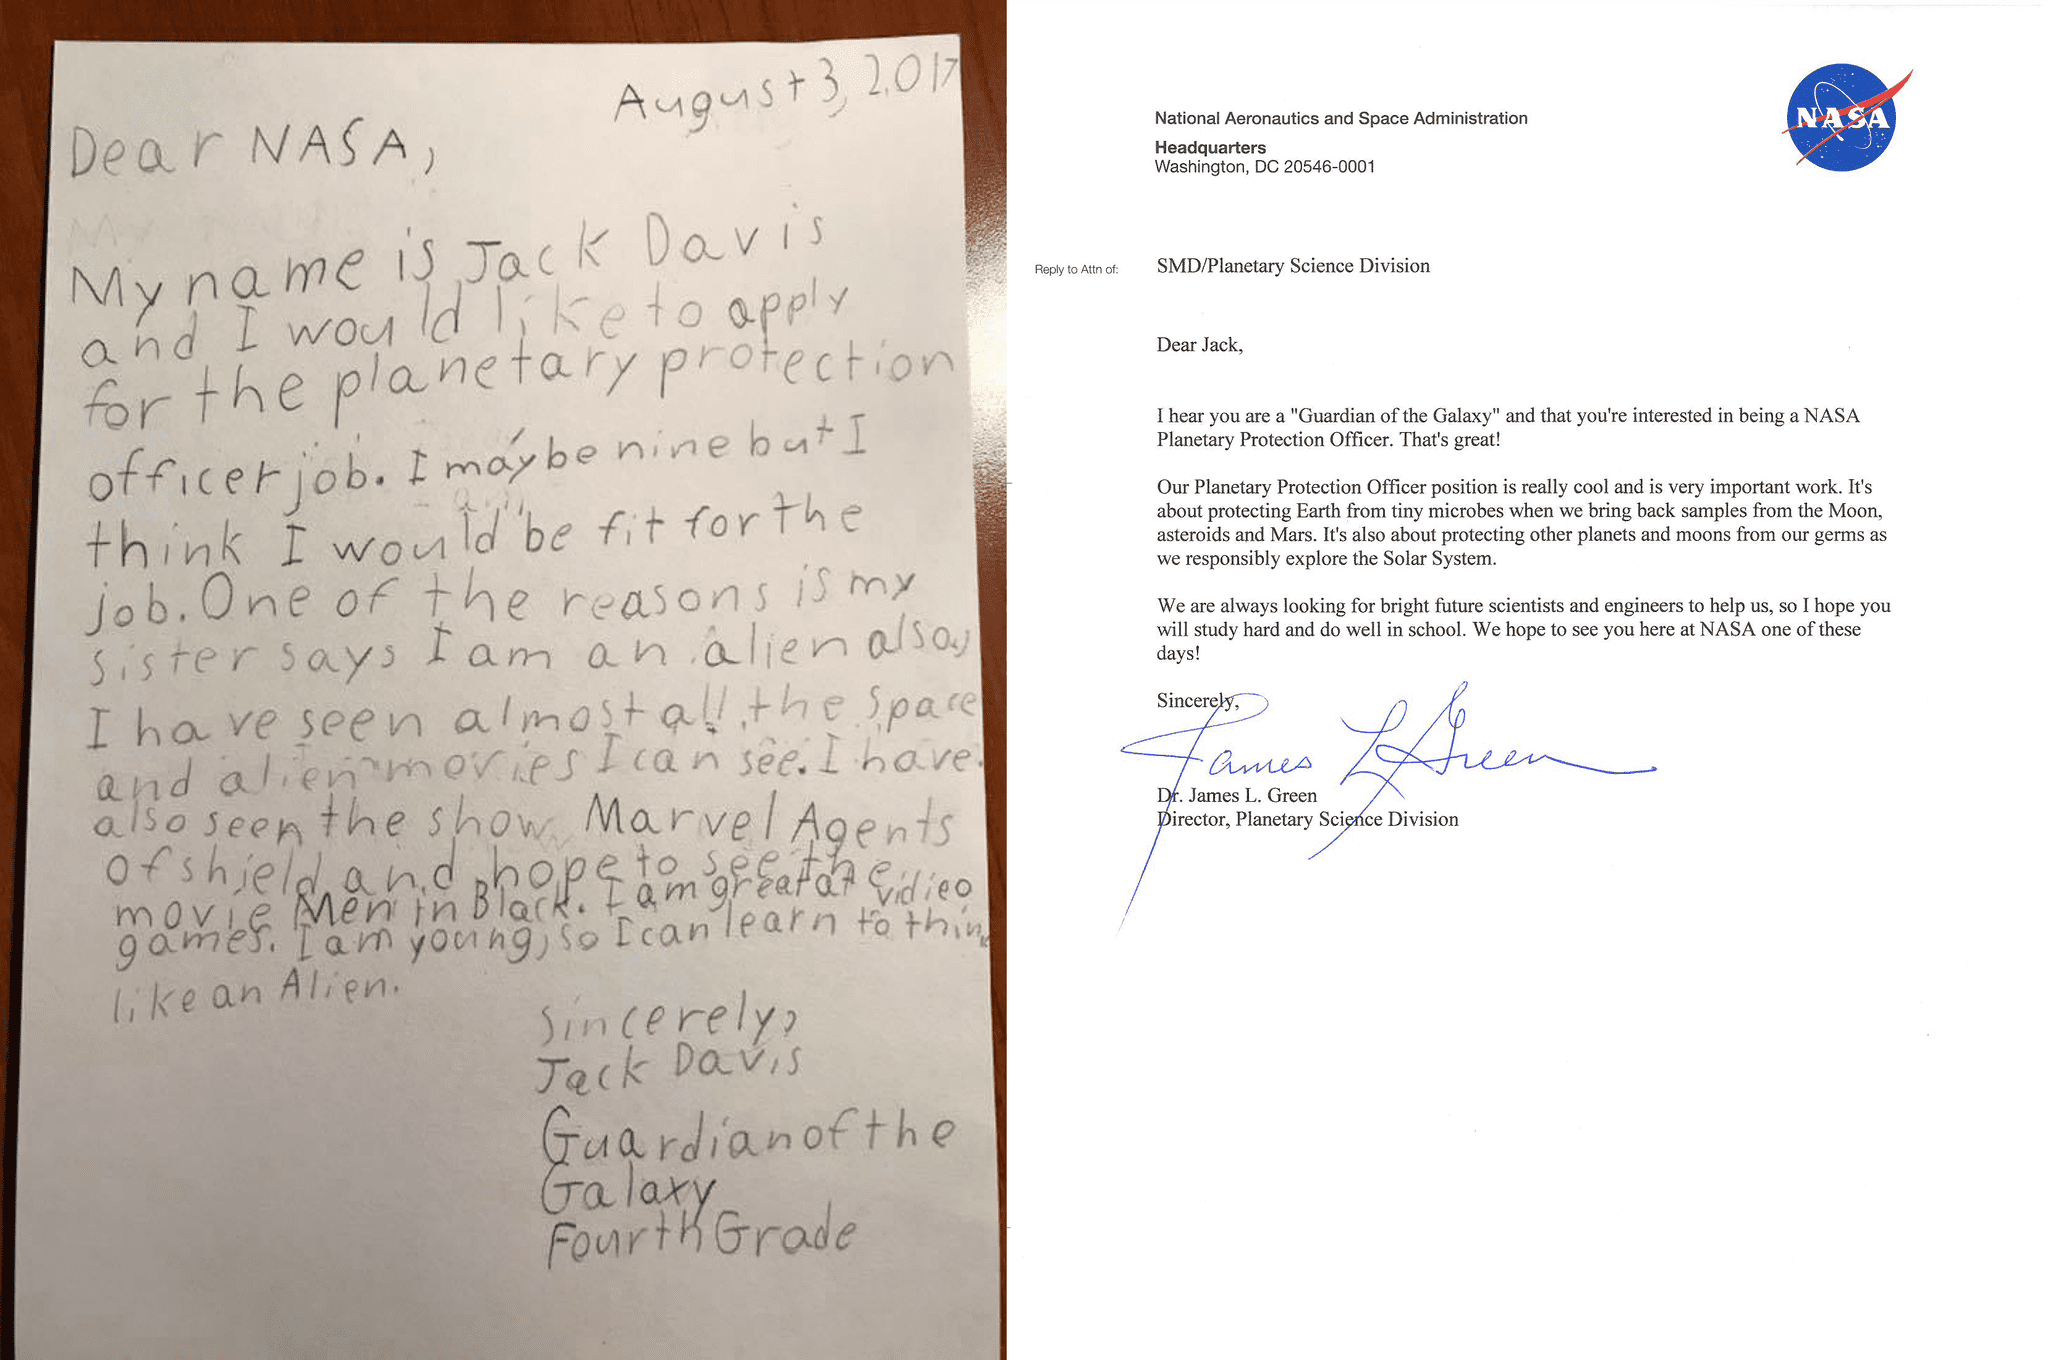 9-year-old applies for job at NASA, receives heartfelt response